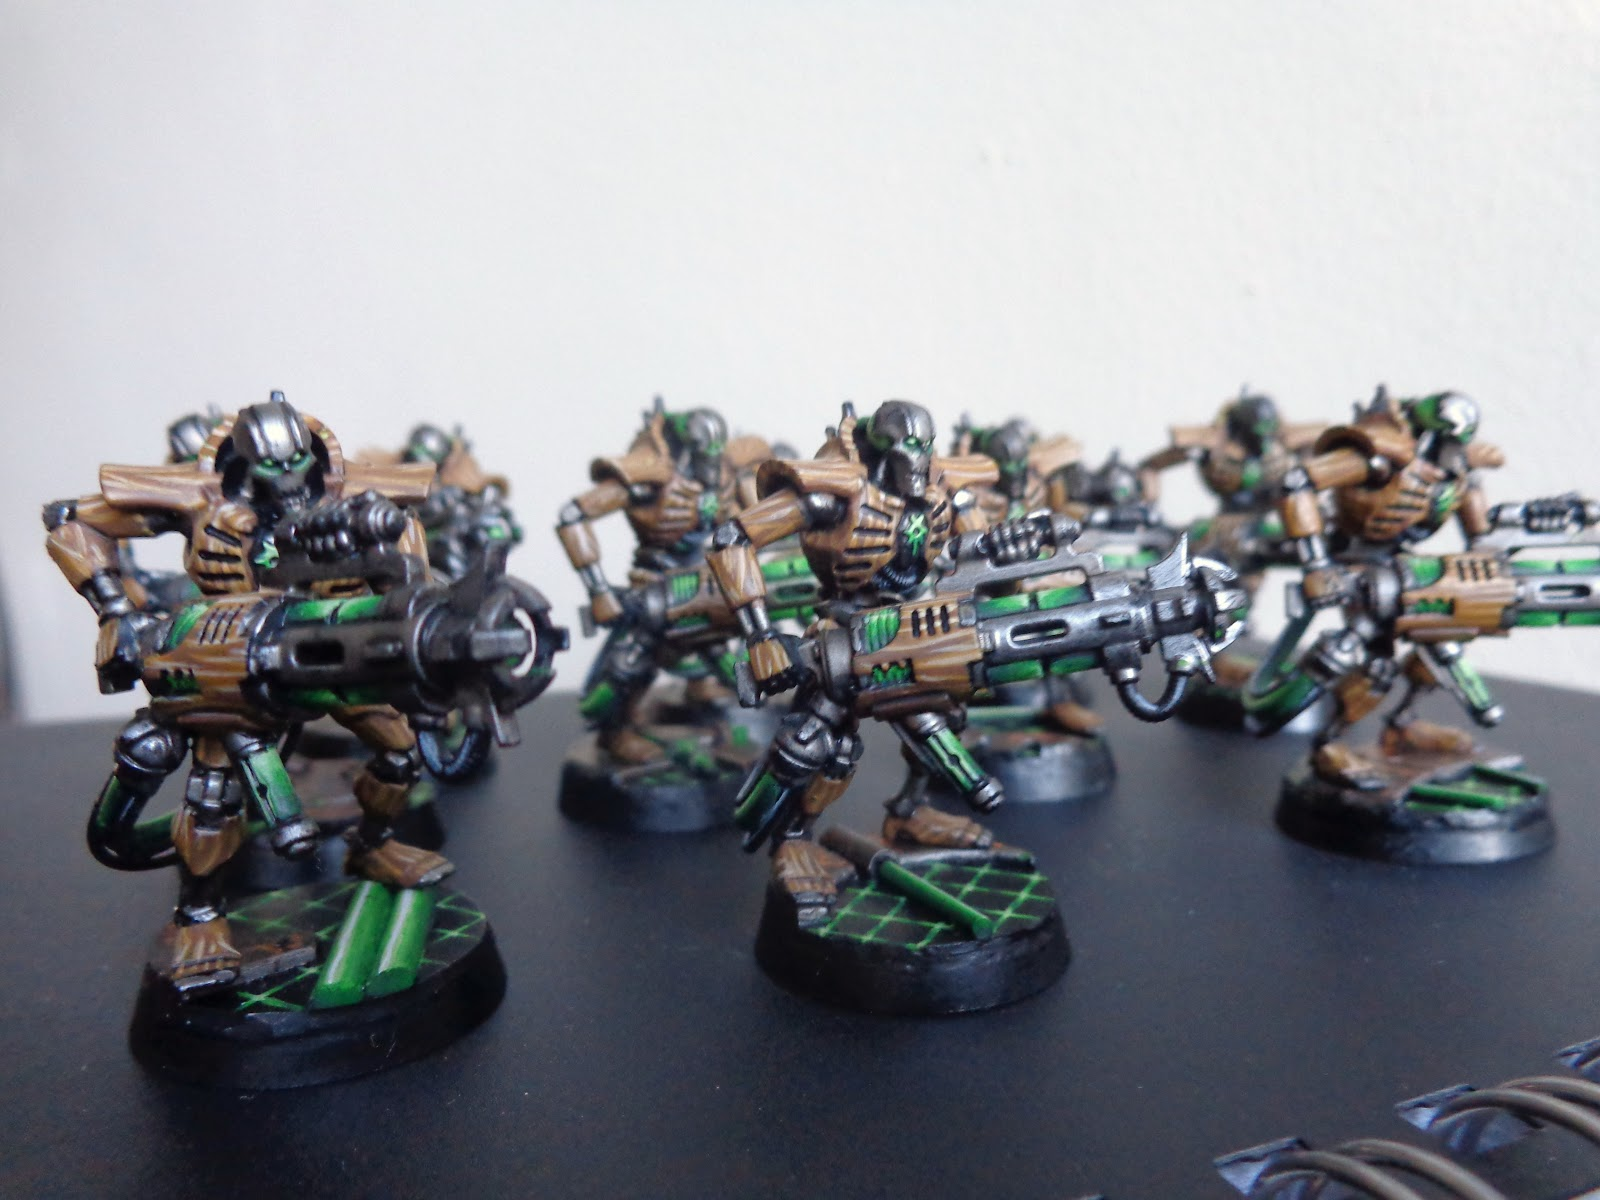 Dims' Galleries: Necron Project part 5, a Masterclass, and a screwup